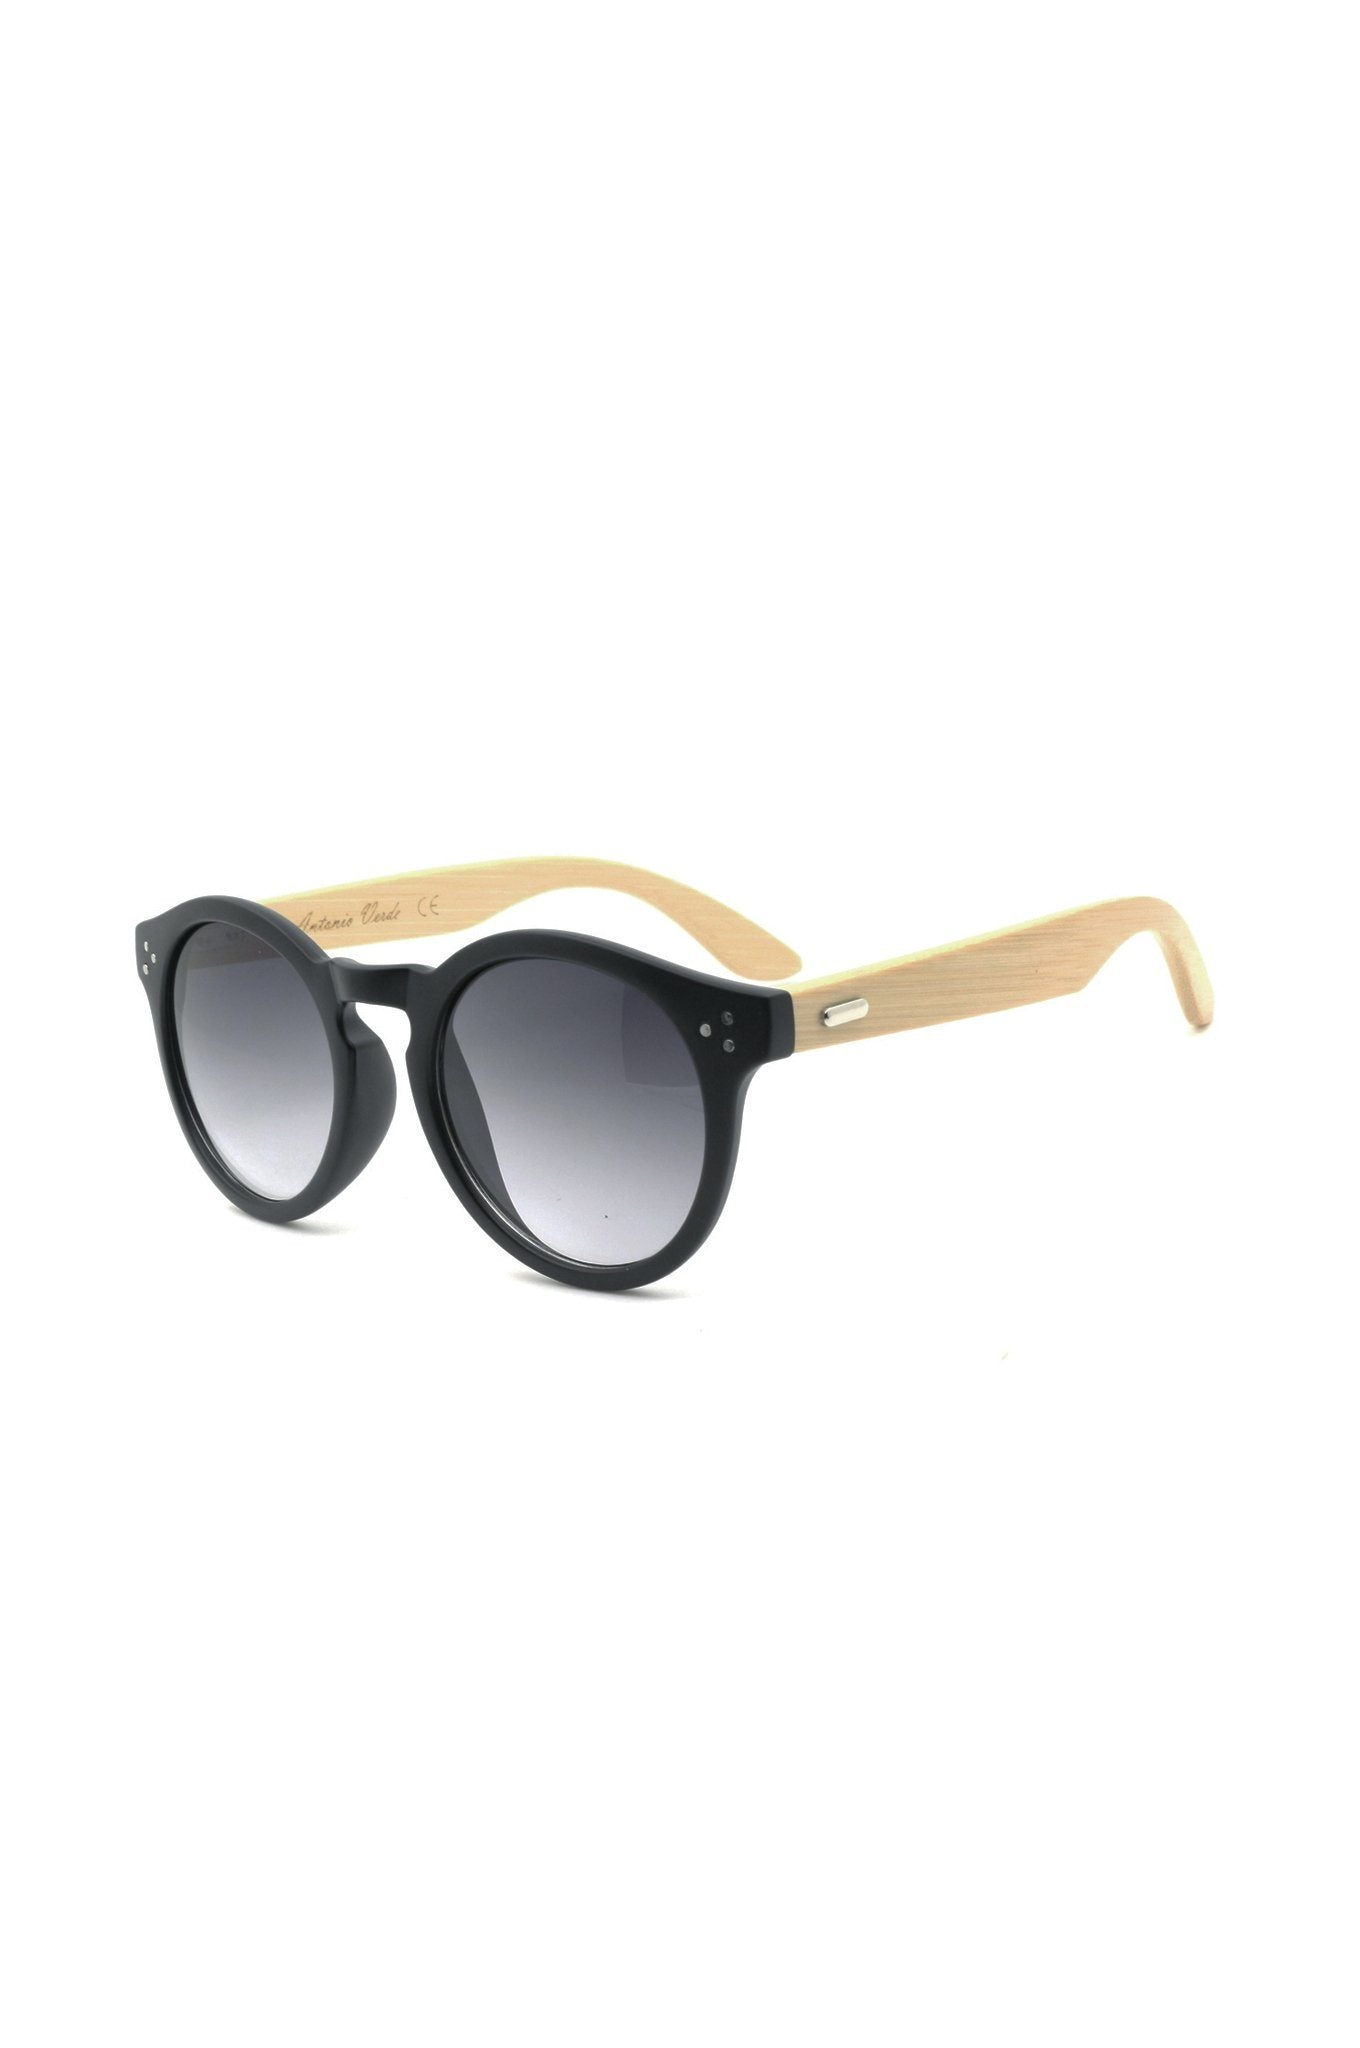 Sunglasses - Barcelona Black